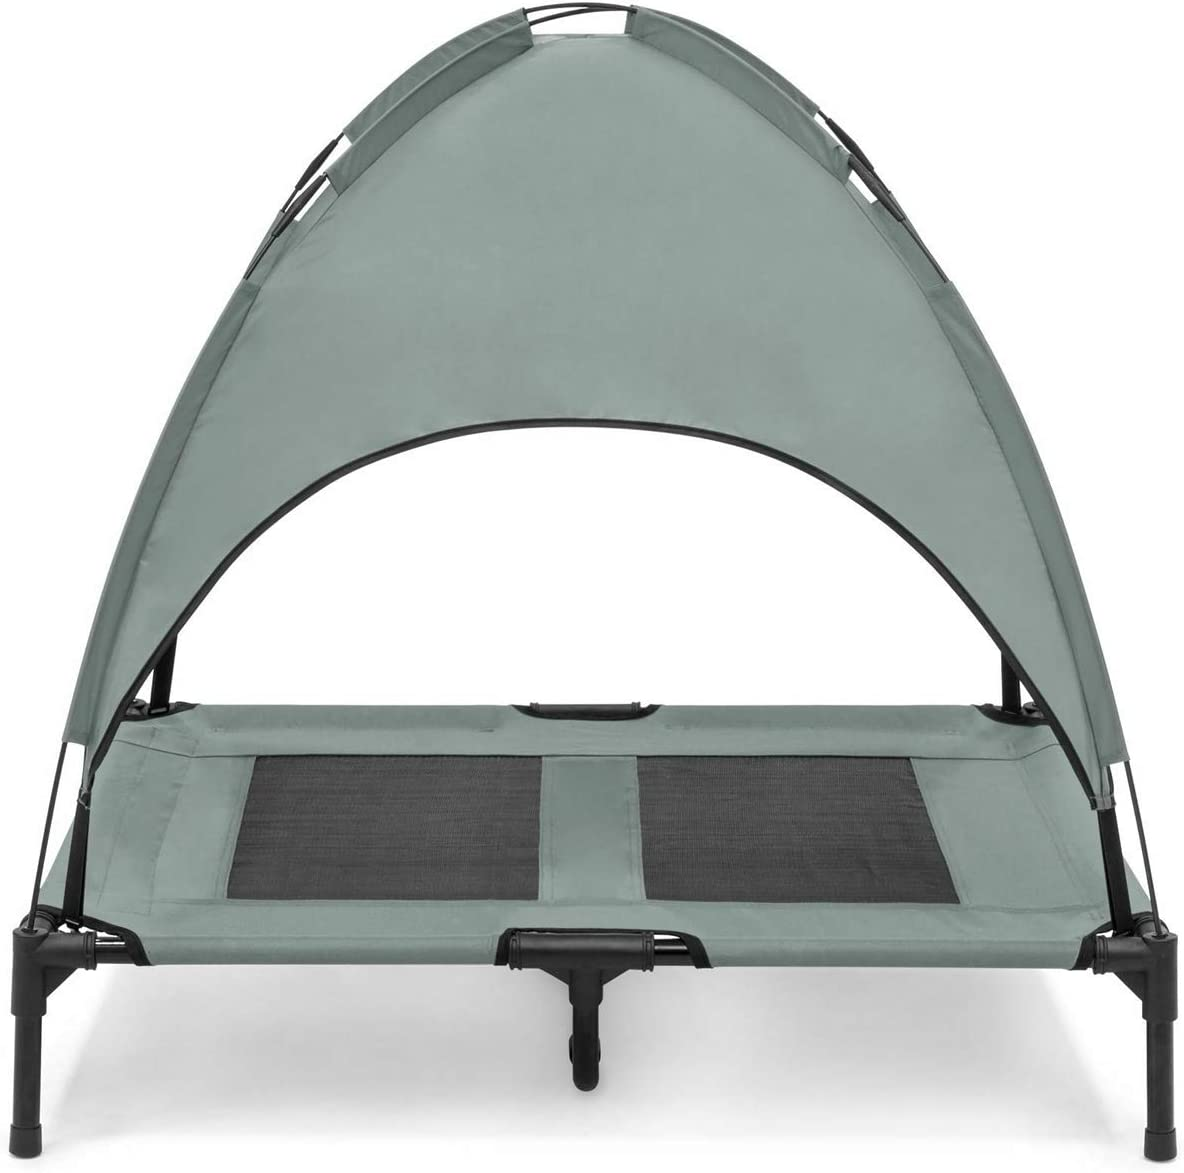 KM Mart 36inc. Gray Raised Outdoor Elevated Mesh Cooling Dog Bed Canopy Tent Sun Shade Breathable Mesh Camping or Beach Bed